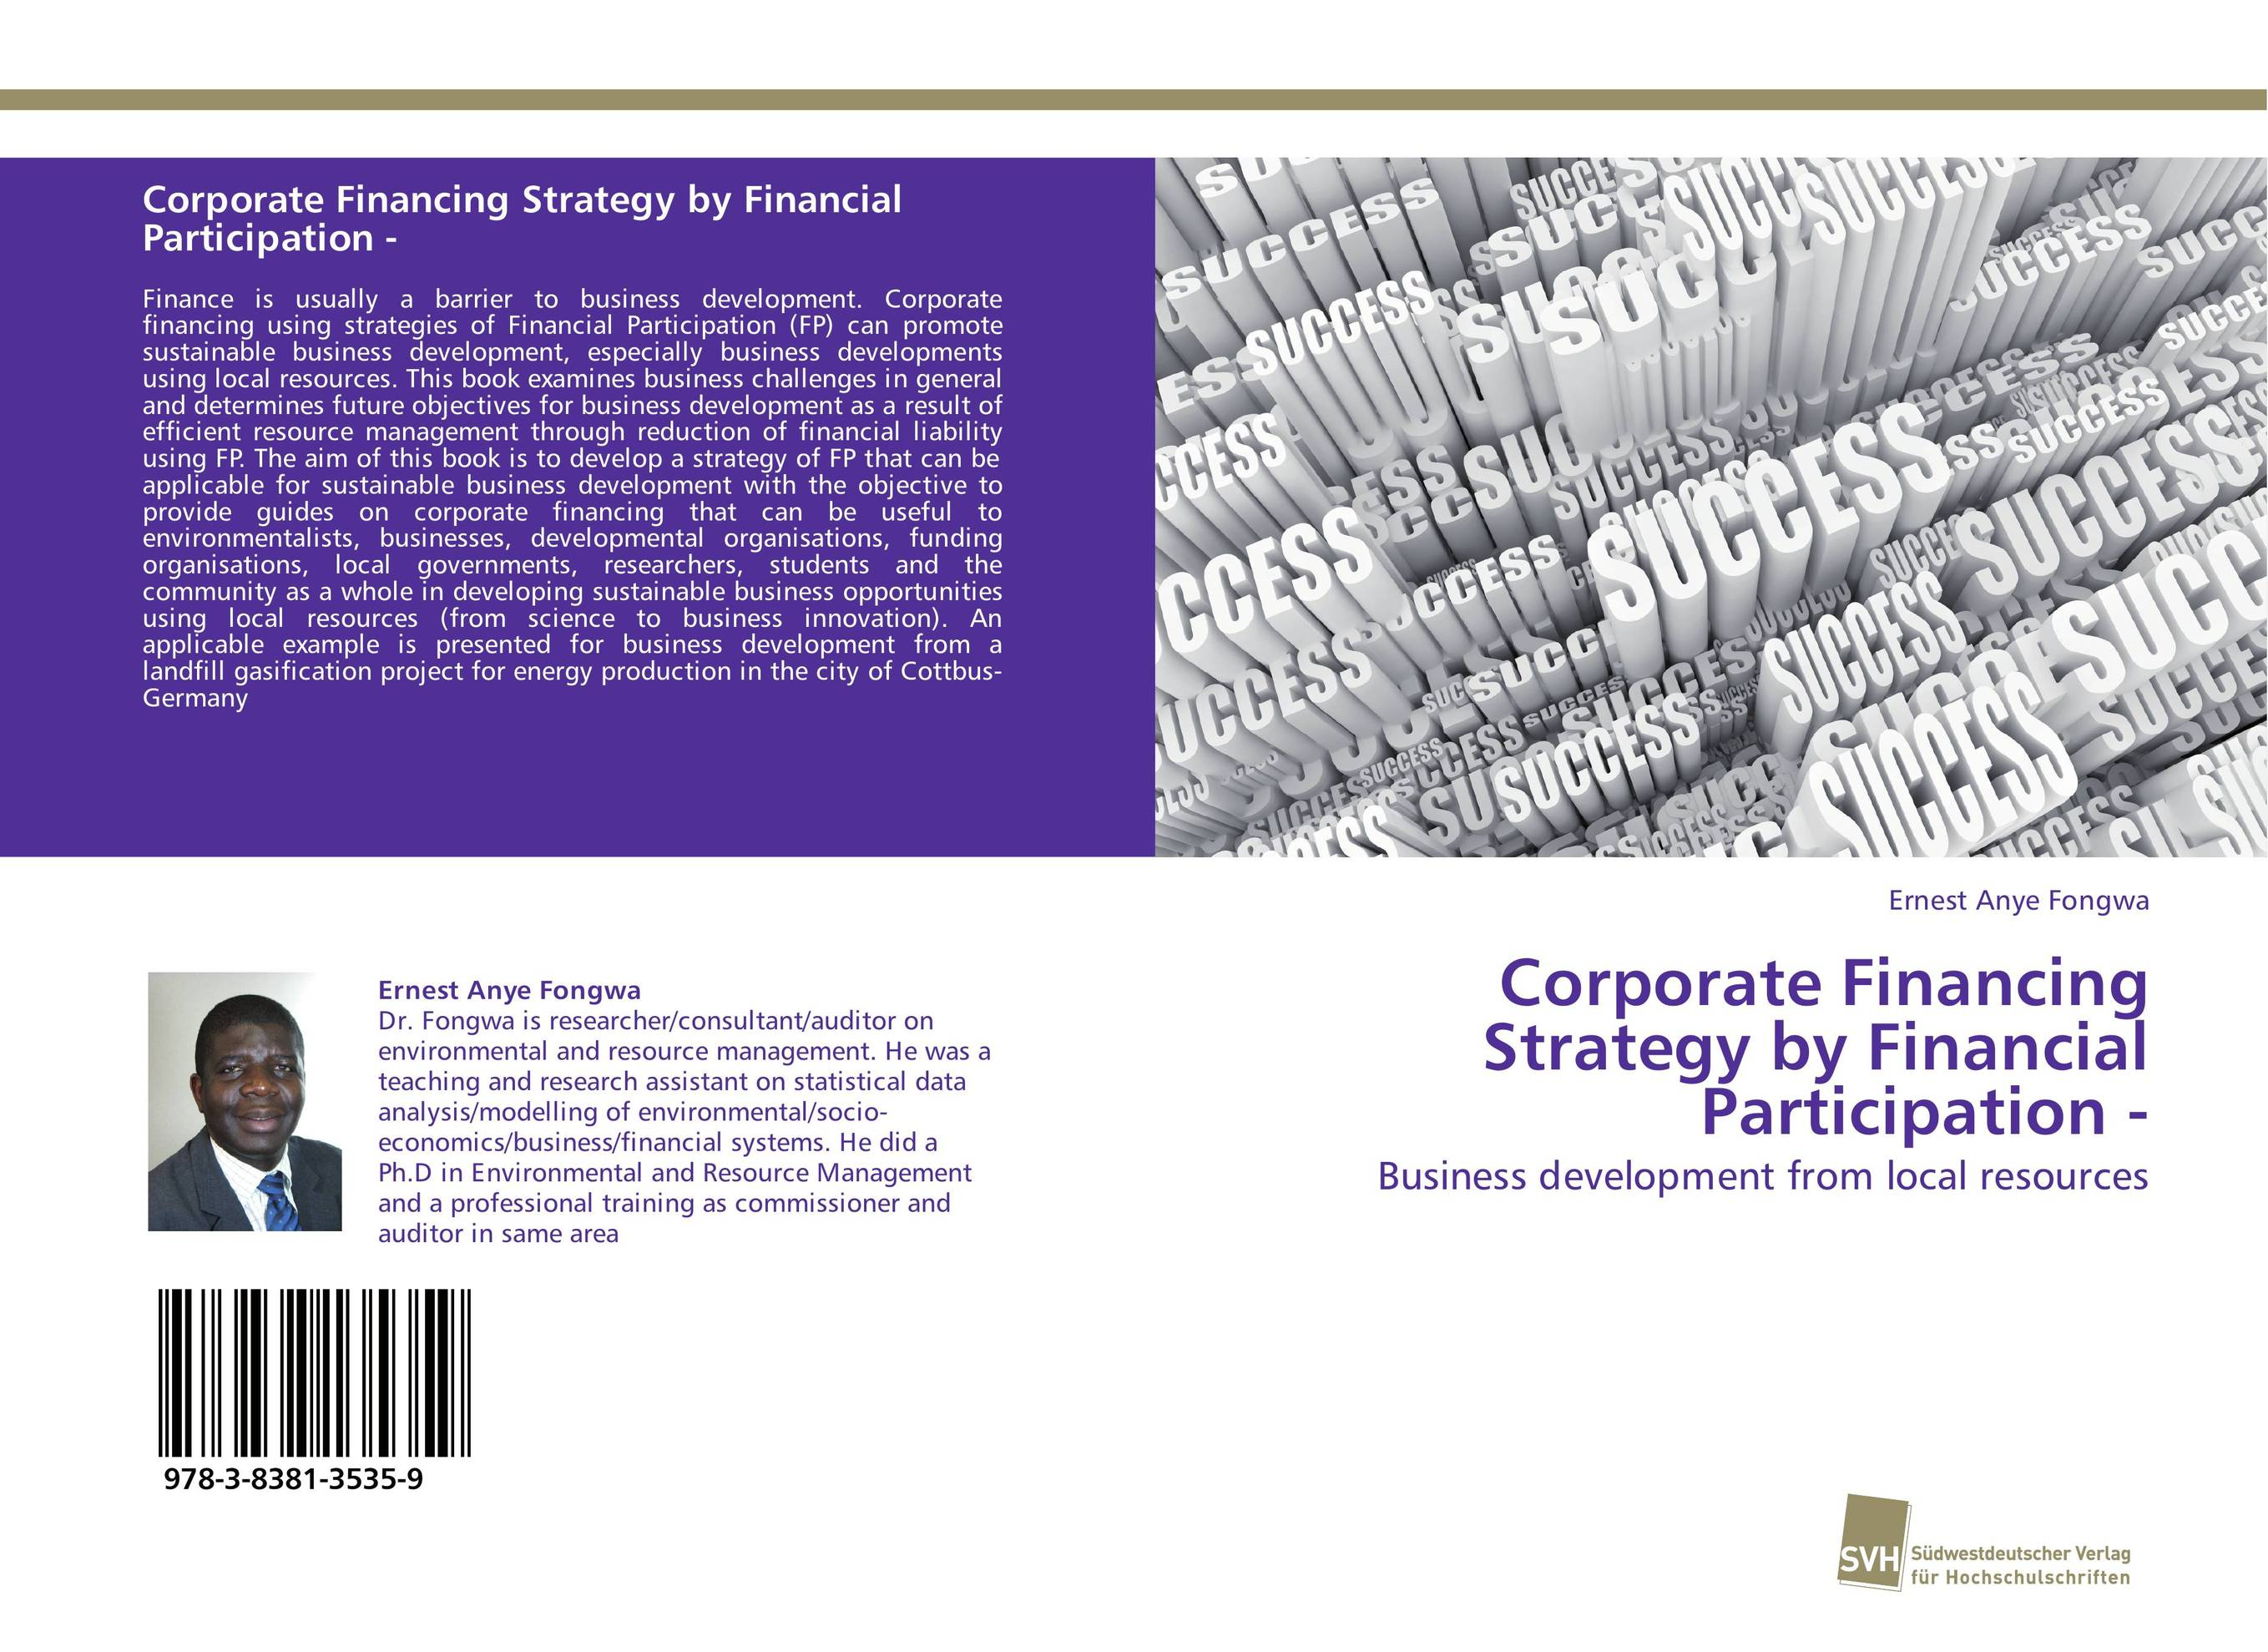 Corporate Financing Strategy by Financial Participation - development financing